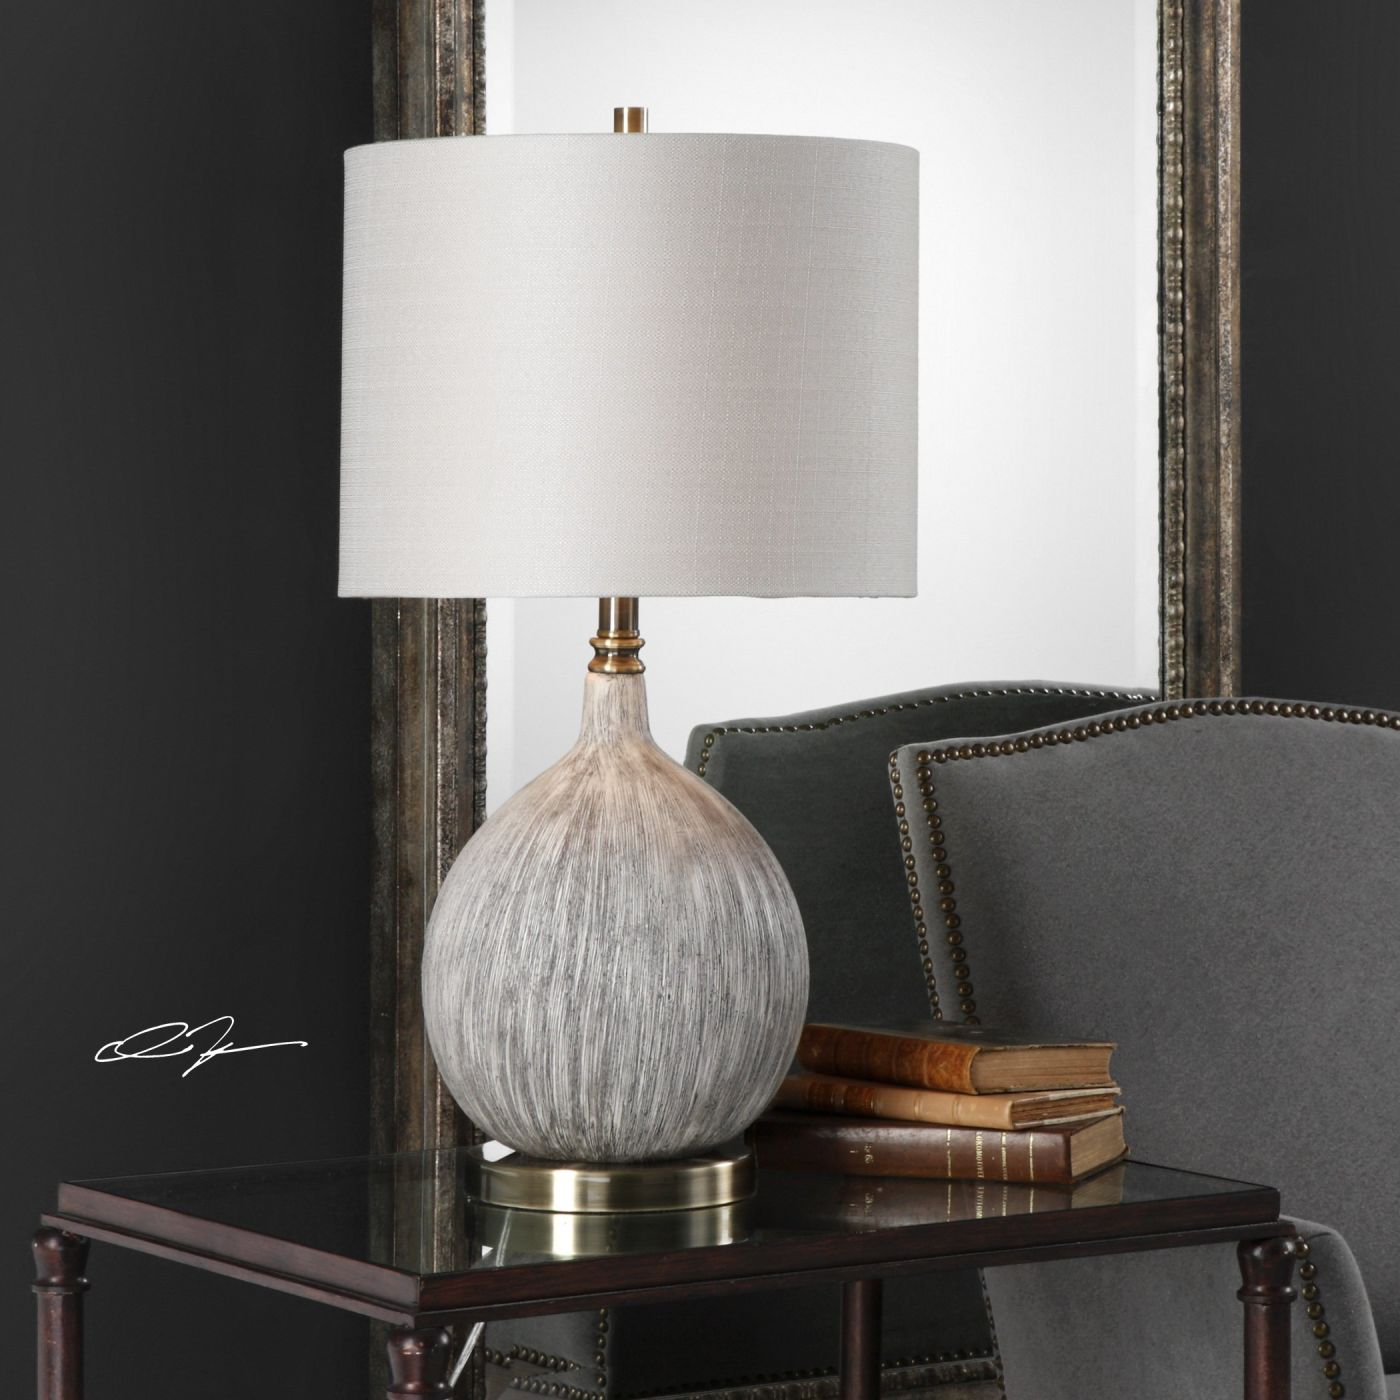 Hedera Textured Ivory Table Lamp Hedera Textured Ivory Table Lamp